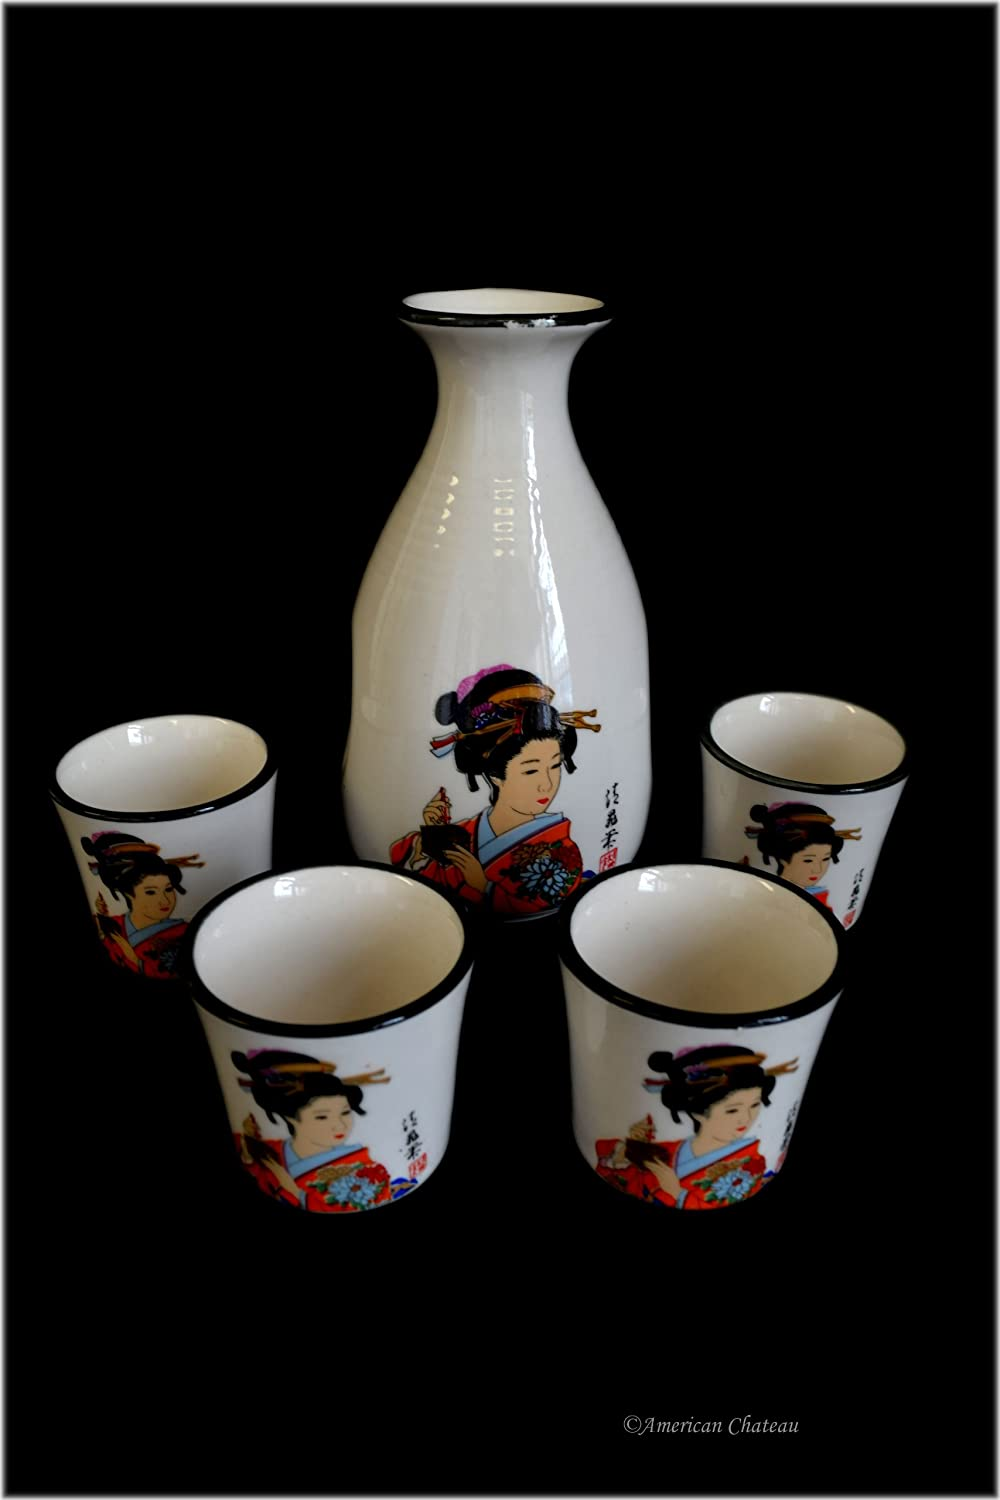 5 pc Japanese Geisha In Kimono Boxed Porcelain Saki Rice Wine Set with Carafe American Chateau